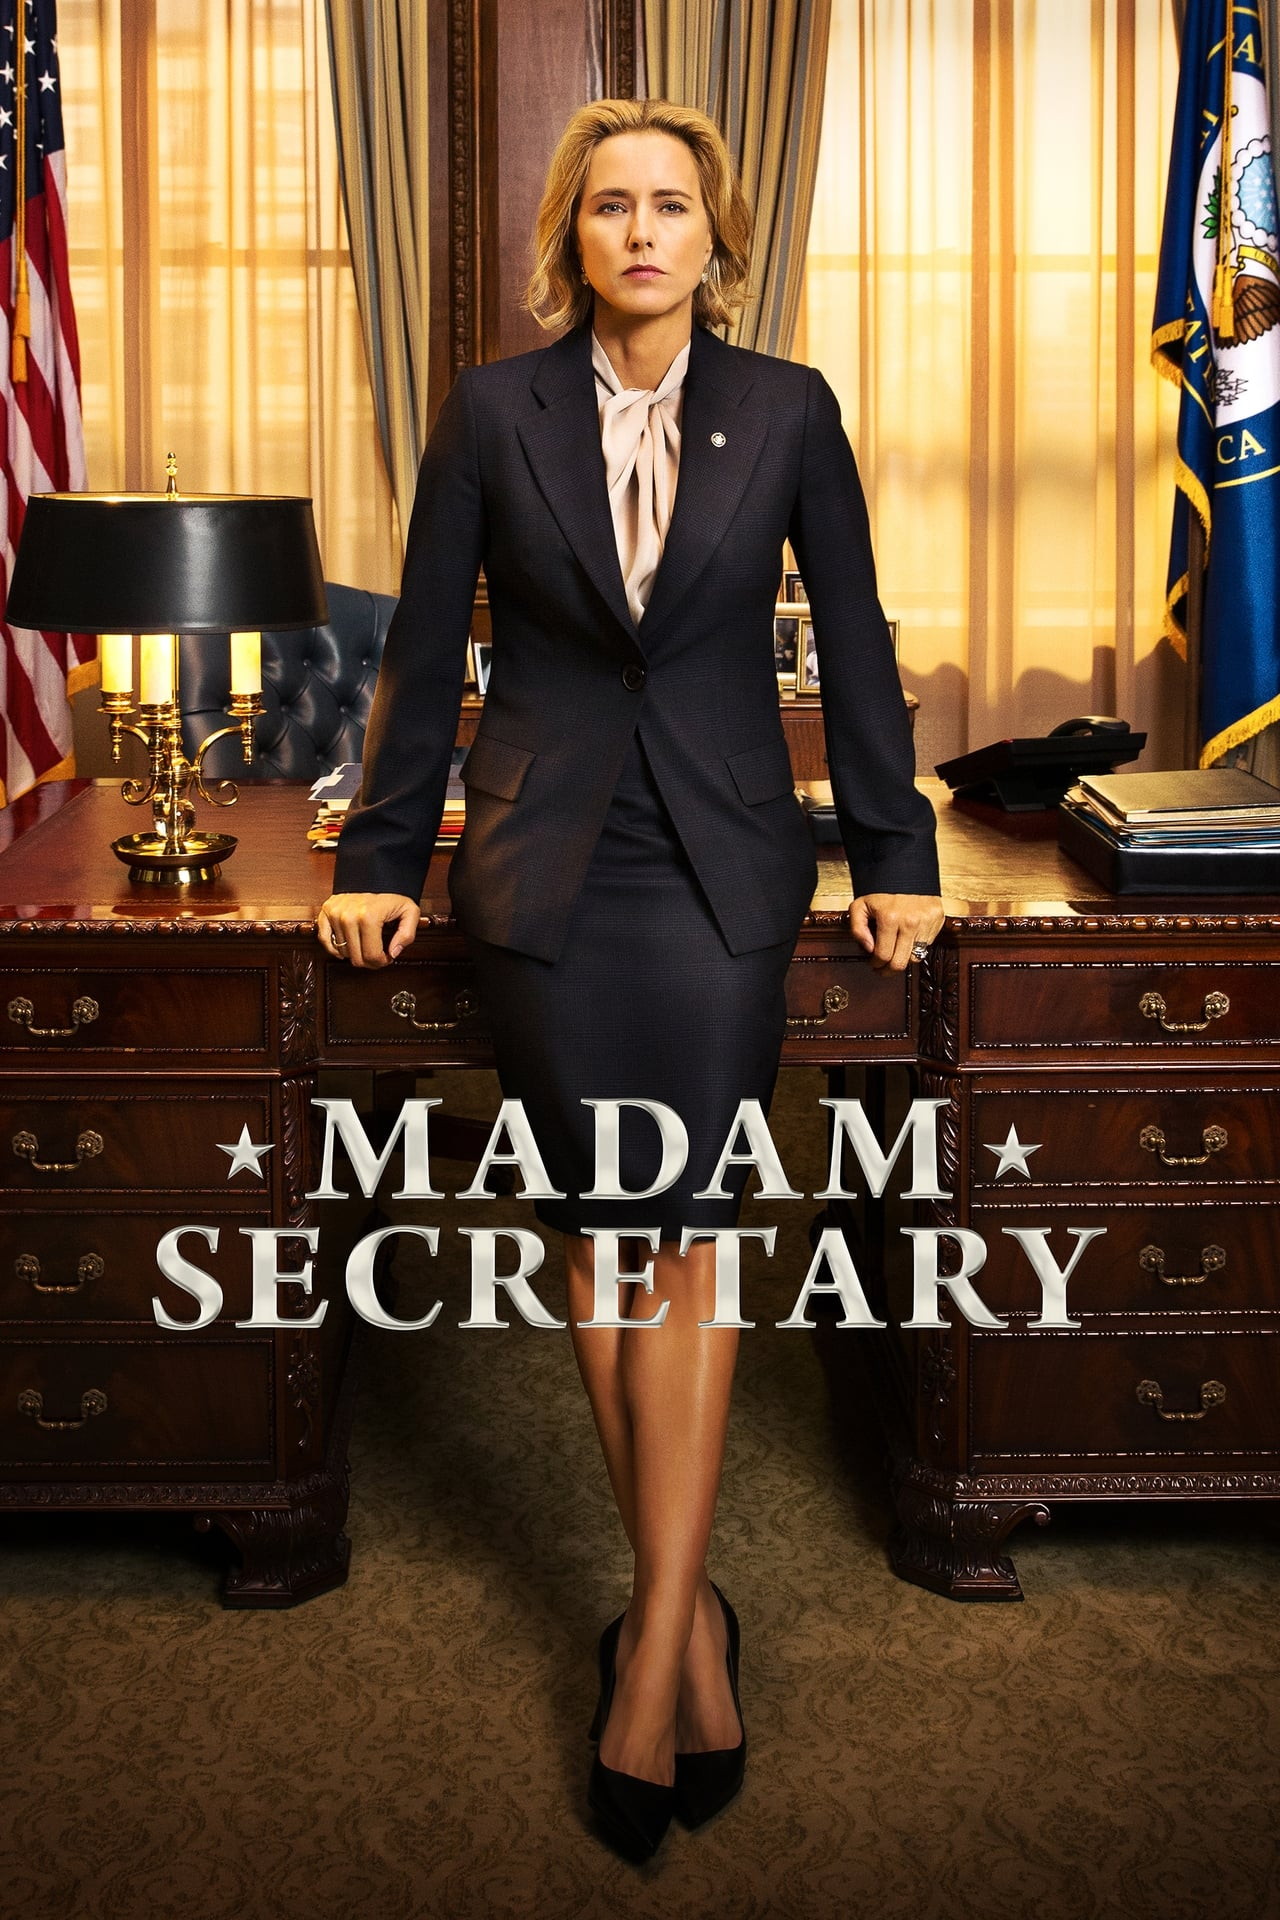 Putlocker Madam Secretary Season 5 (2018)